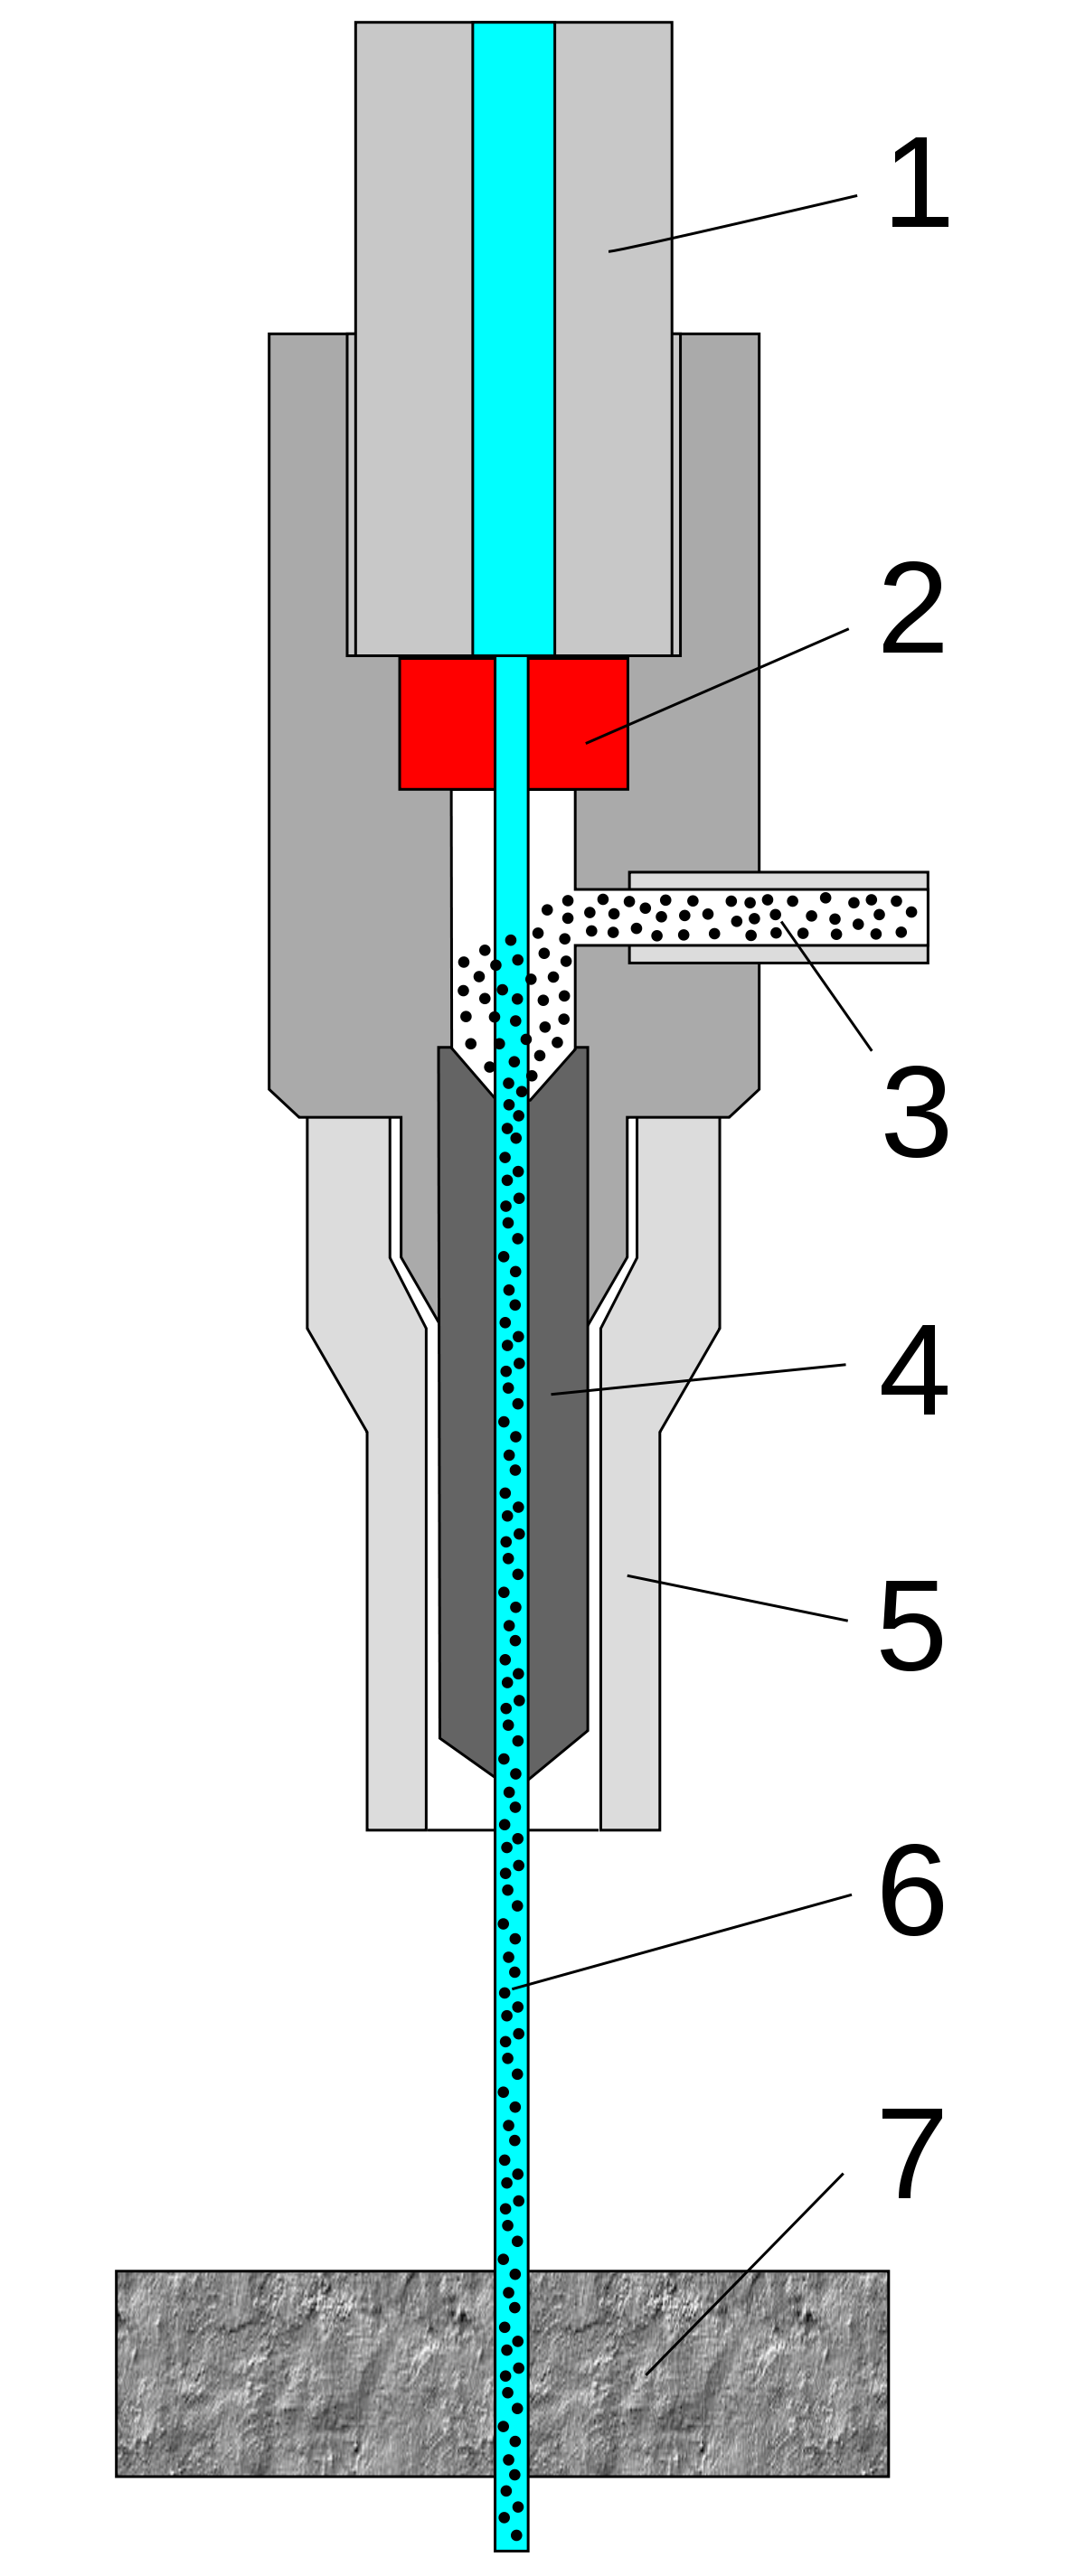 Pantograph drawing router craftsman. Water jet cutter wikipedia